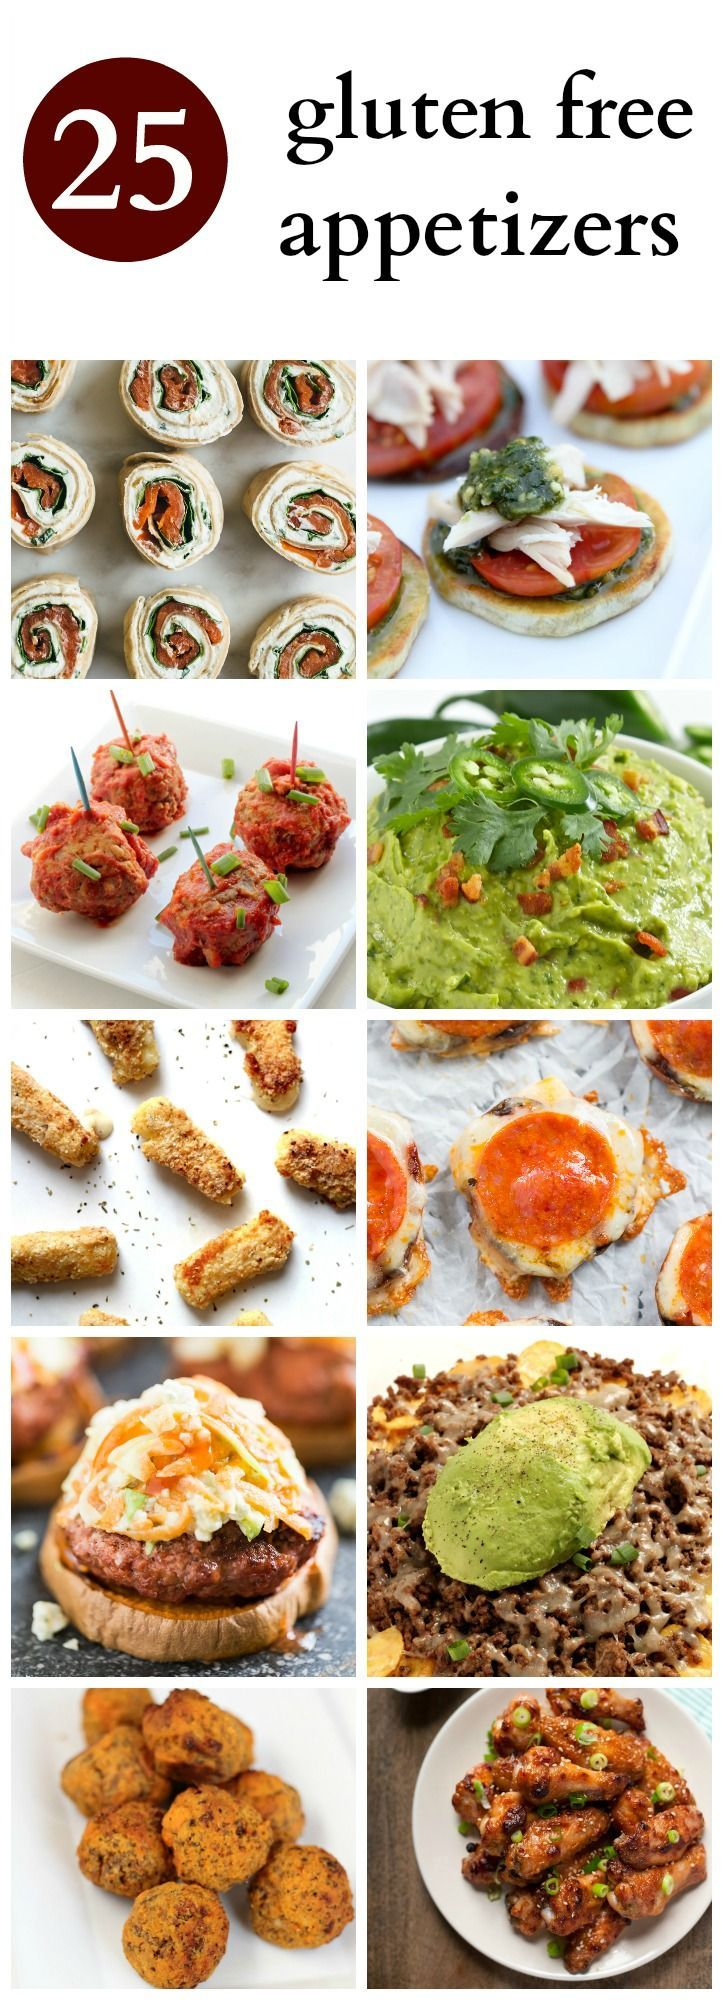 Here are 25 Gluten Free Appetizers! Perfect to bring to a party or snack on before dinner. (Most are Paleo)